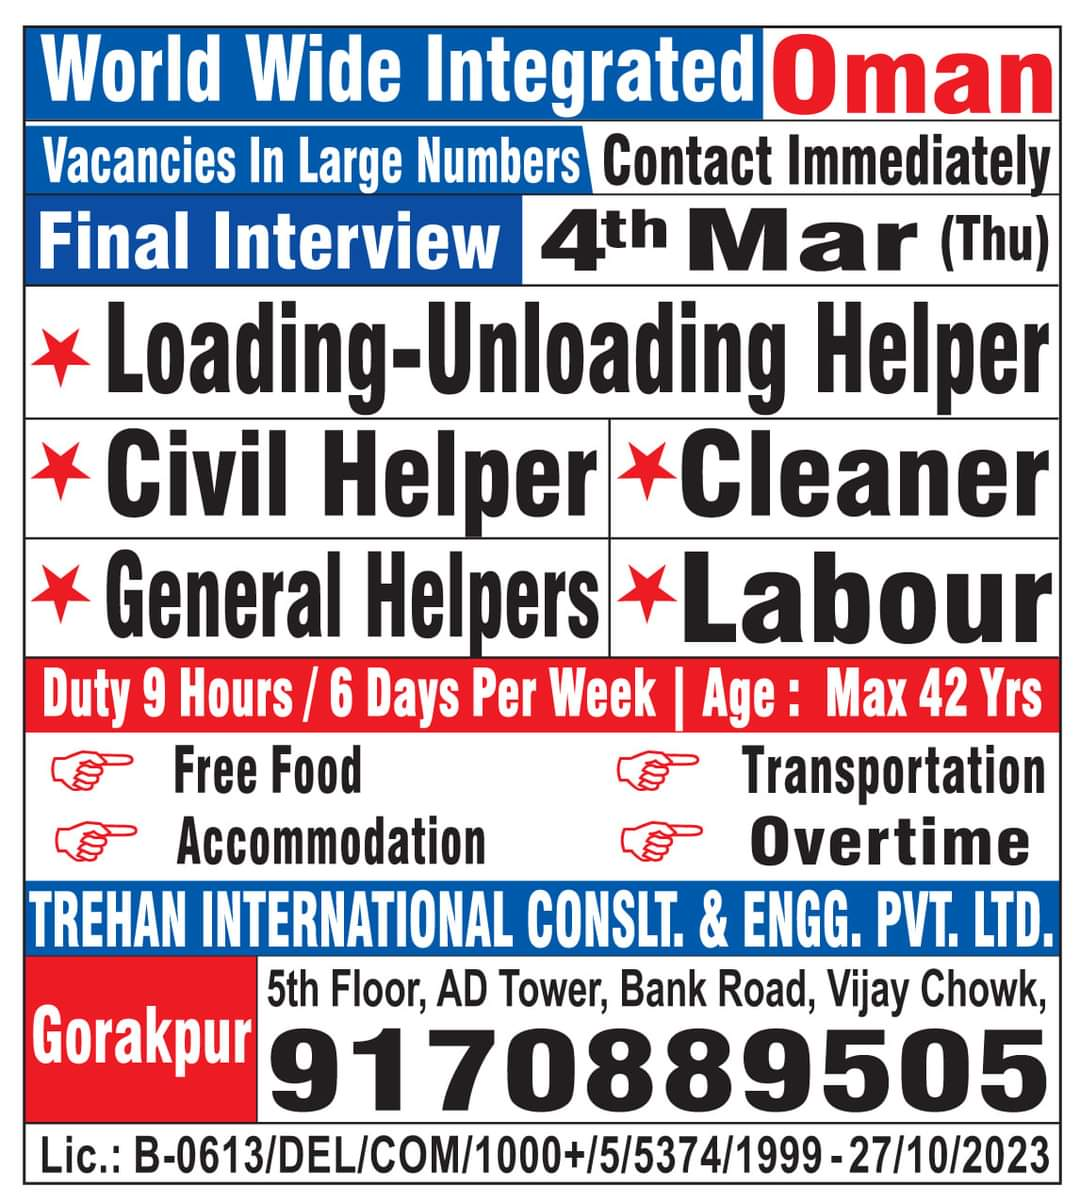 WORLD WIDE INTEGRATED OMAN